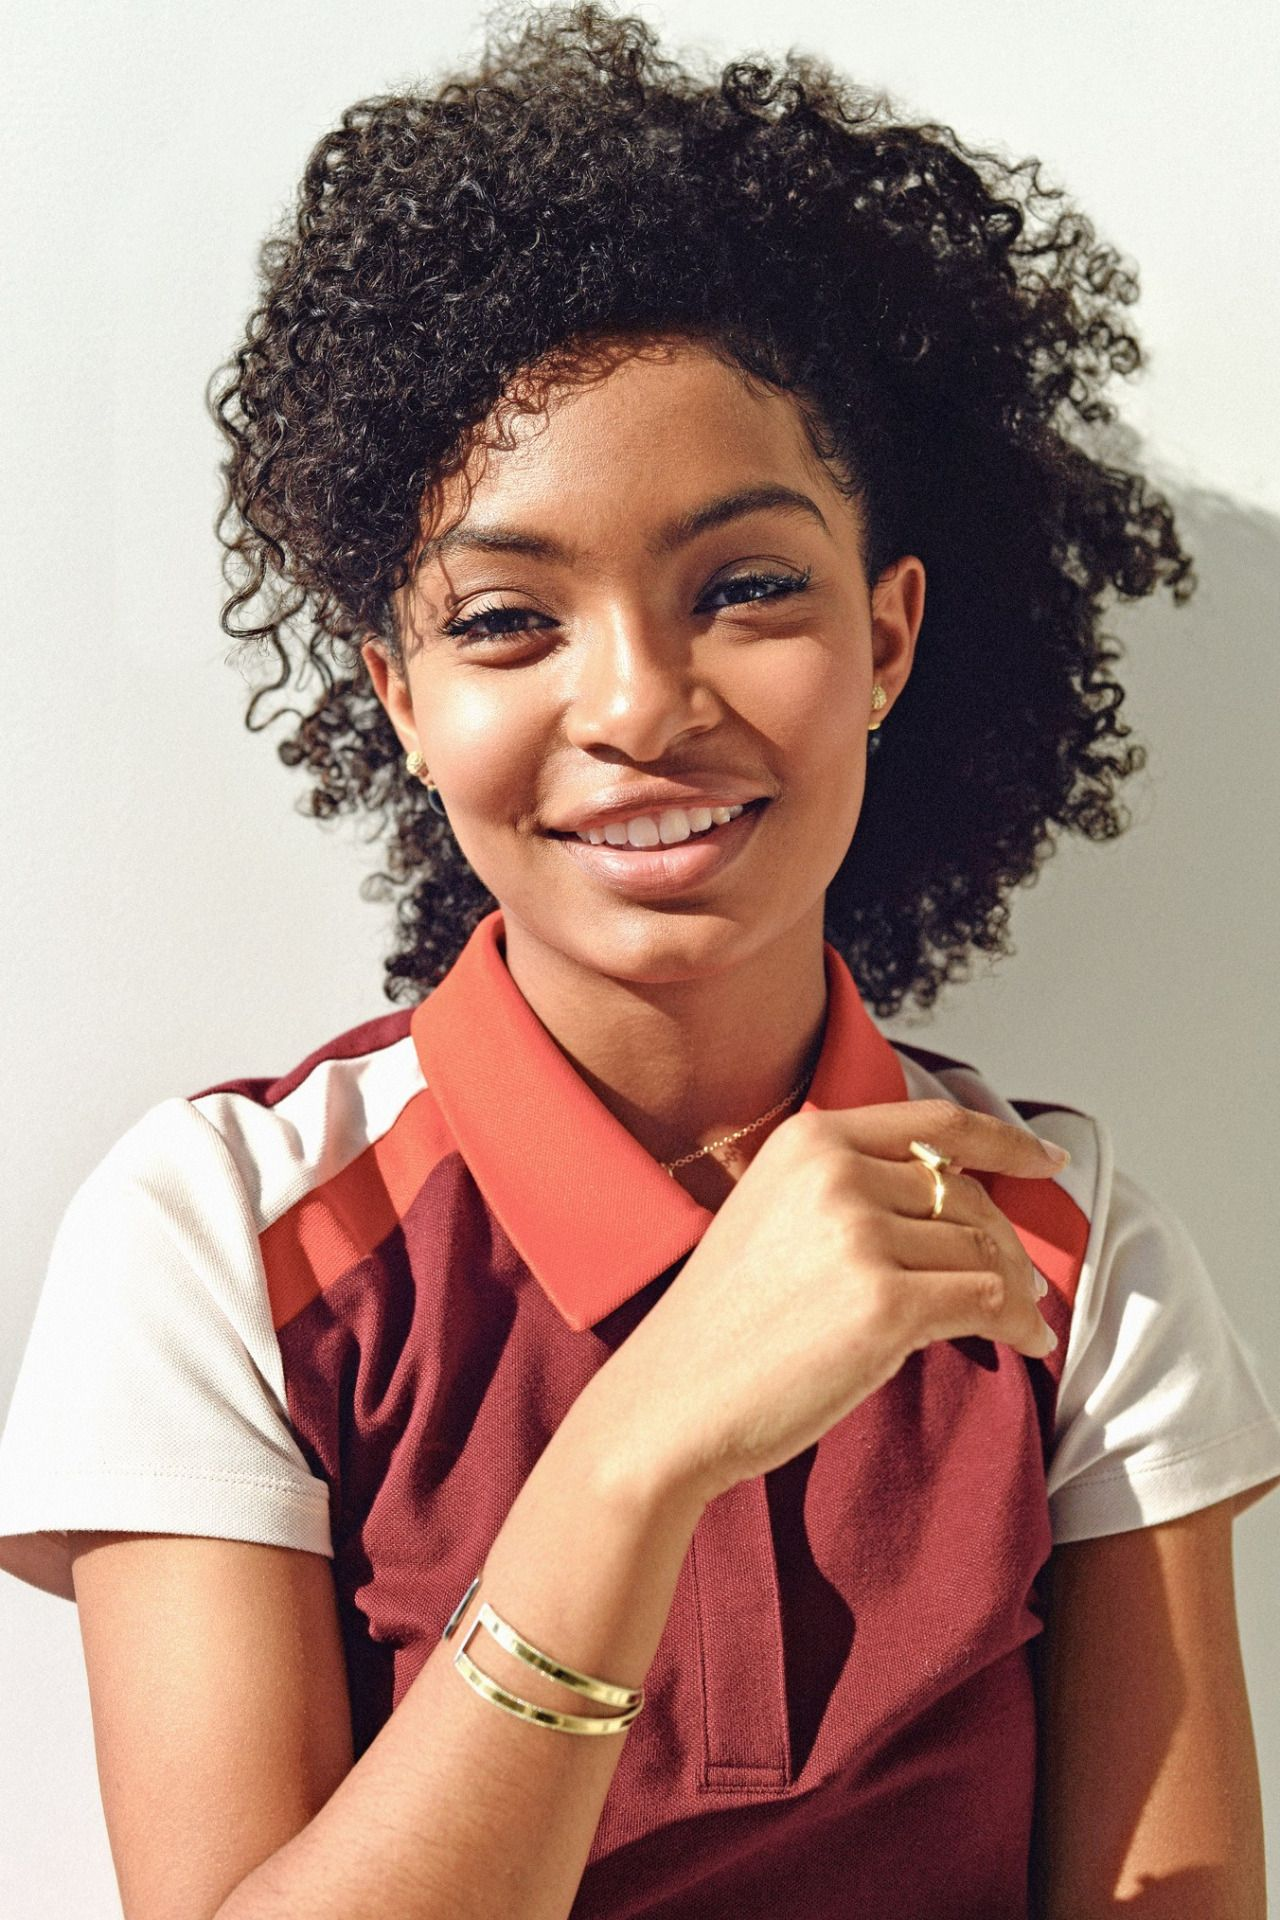 Yara Shahidi is a model that appeared in Drake Nice For What